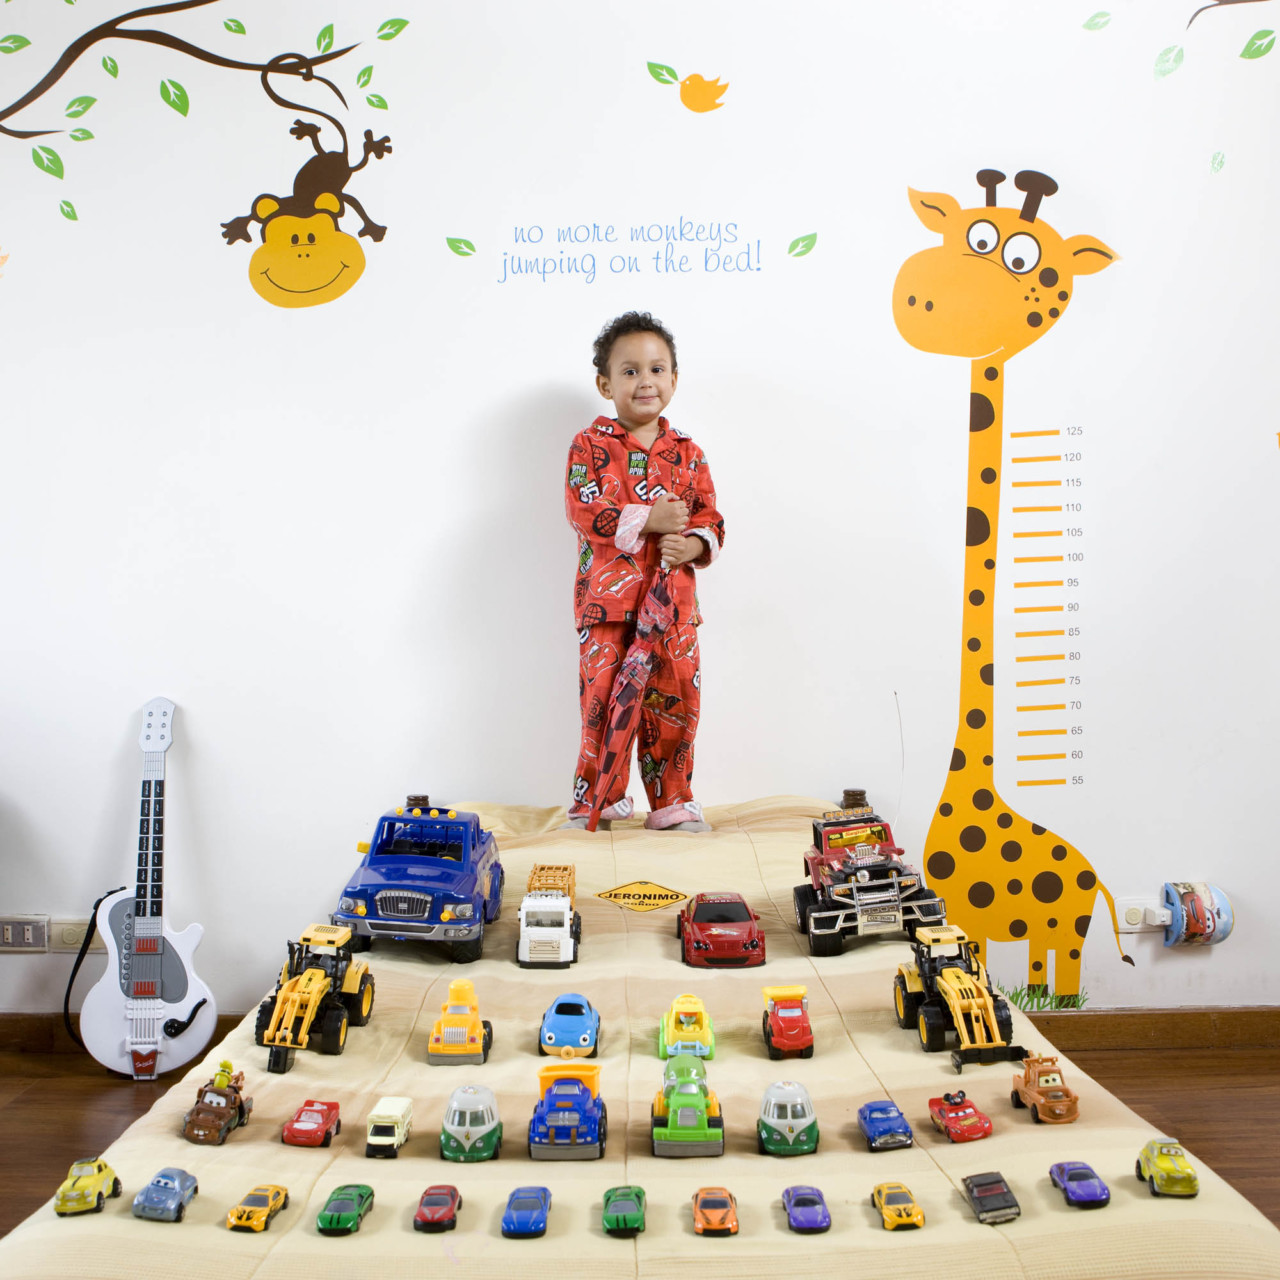 Stories: Children's toys around the world